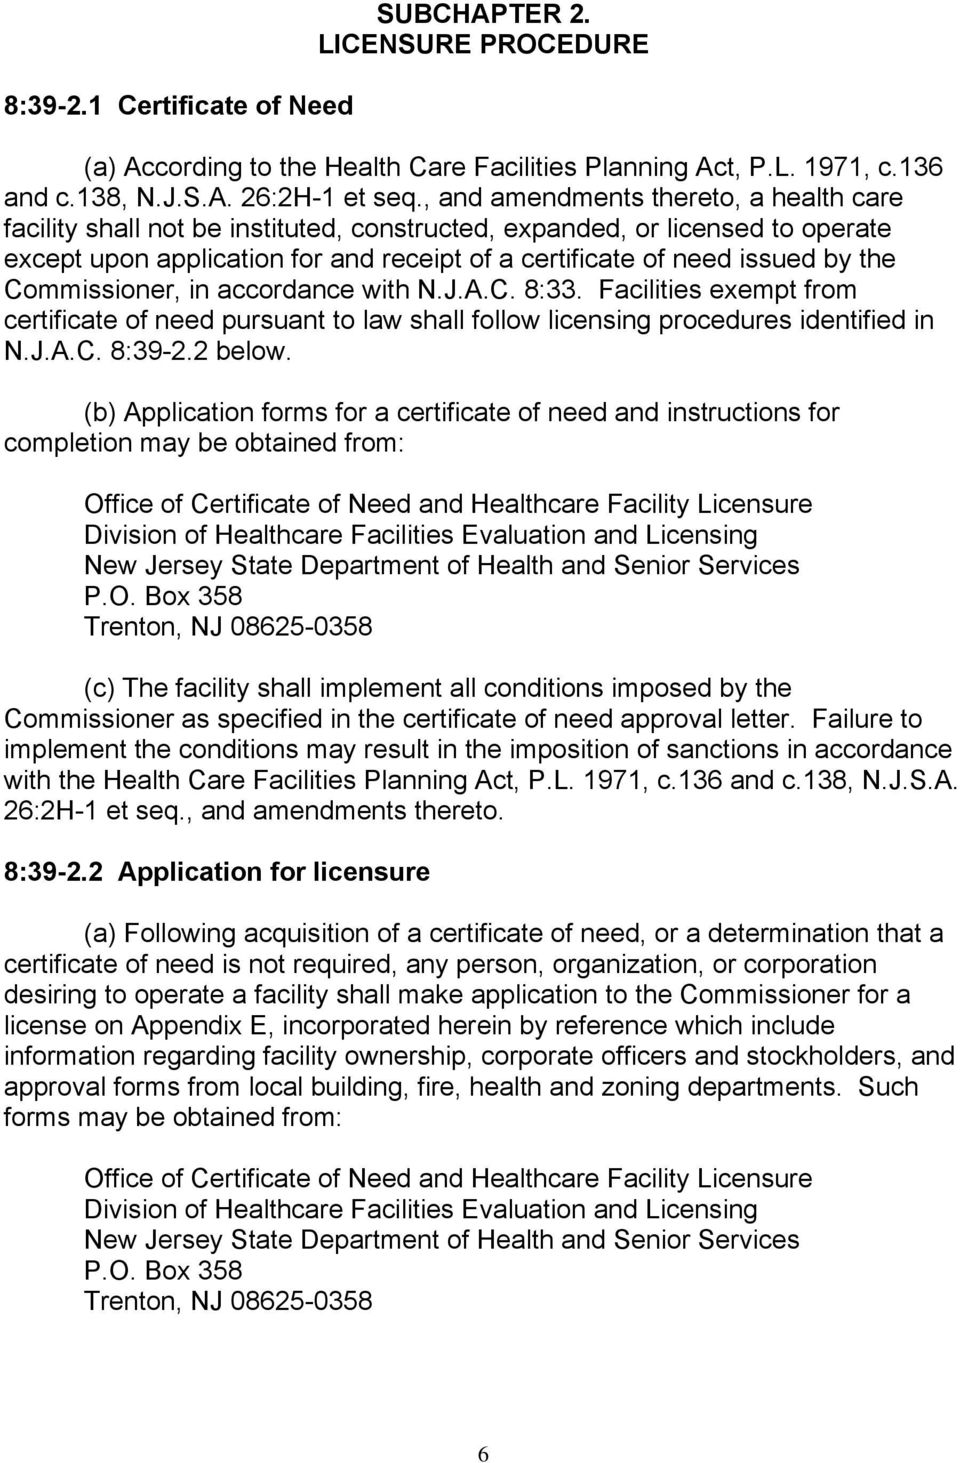 Commissioner, in accordance with N.J.A.C. 8:33. Facilities exempt from certificate of need pursuant to law shall follow licensing procedures identified in N.J.A.C. 8:39-2.2 below.